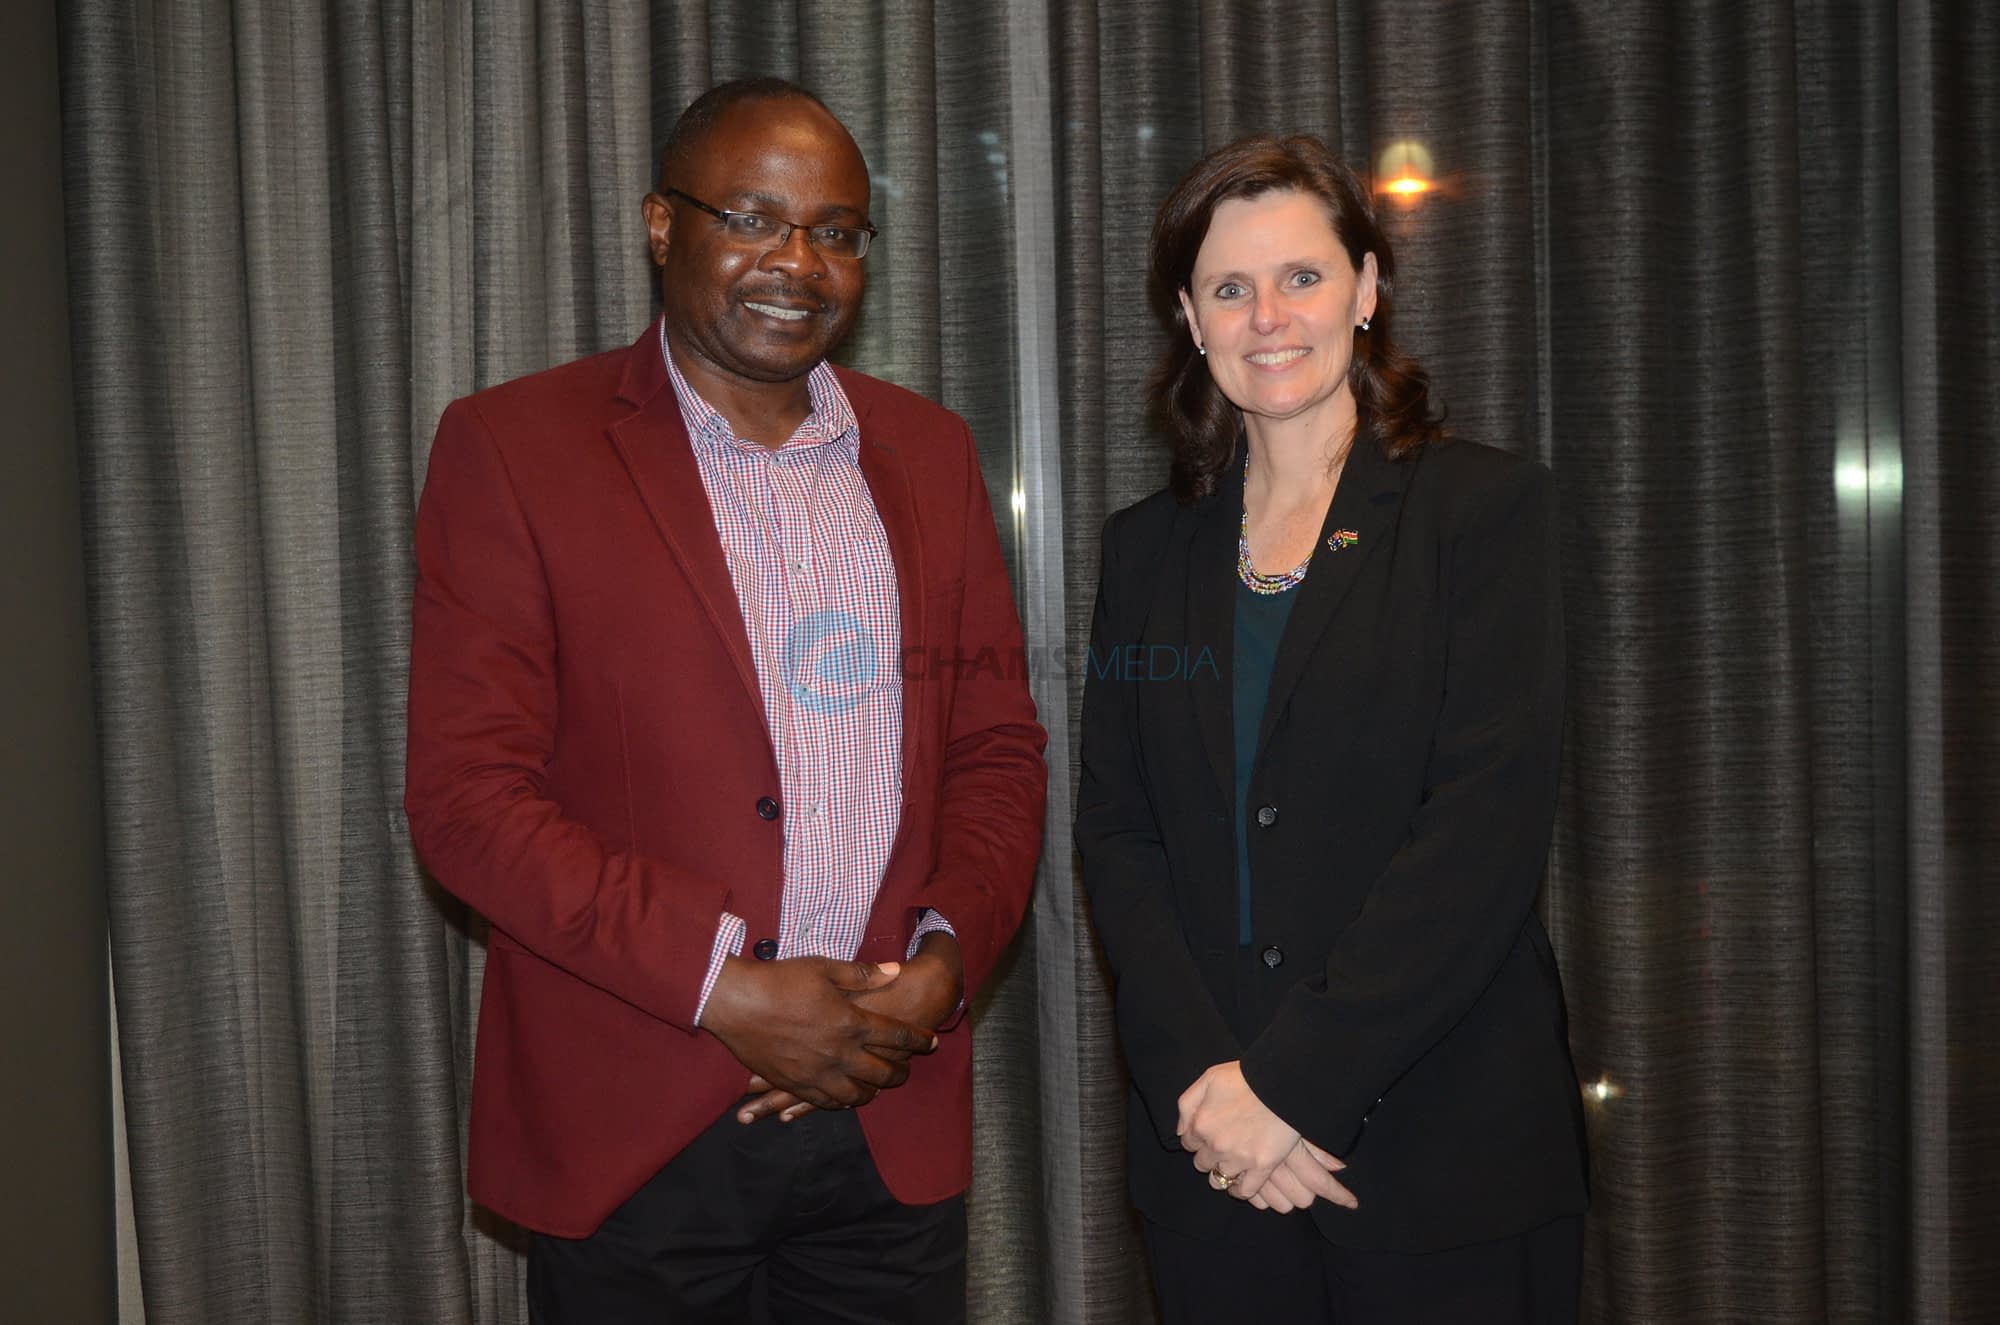 CHAMS Media CEO Alex Chamwada with Australia's High Commissioner to Kenya Alison Chartress in Perth City September 2019 during the Africa Oil, Gas and Energy Conference